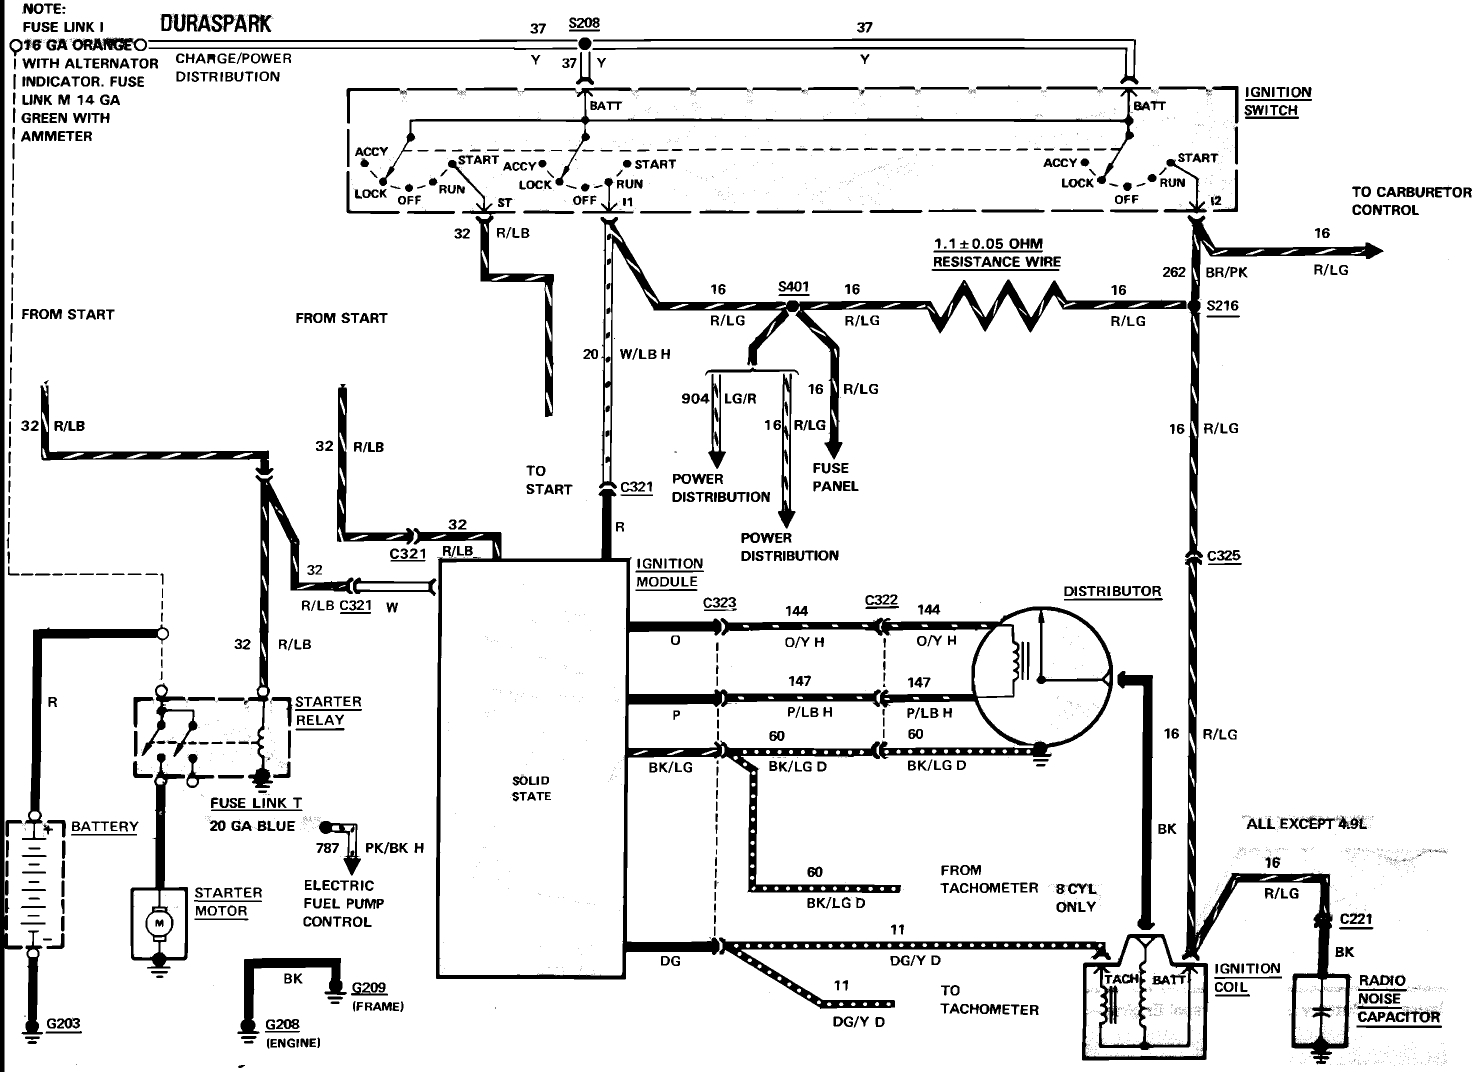 1989 ford f350 ignition wiring diagram 1989 ford f150 ignition wiring diagram | free wiring diagram